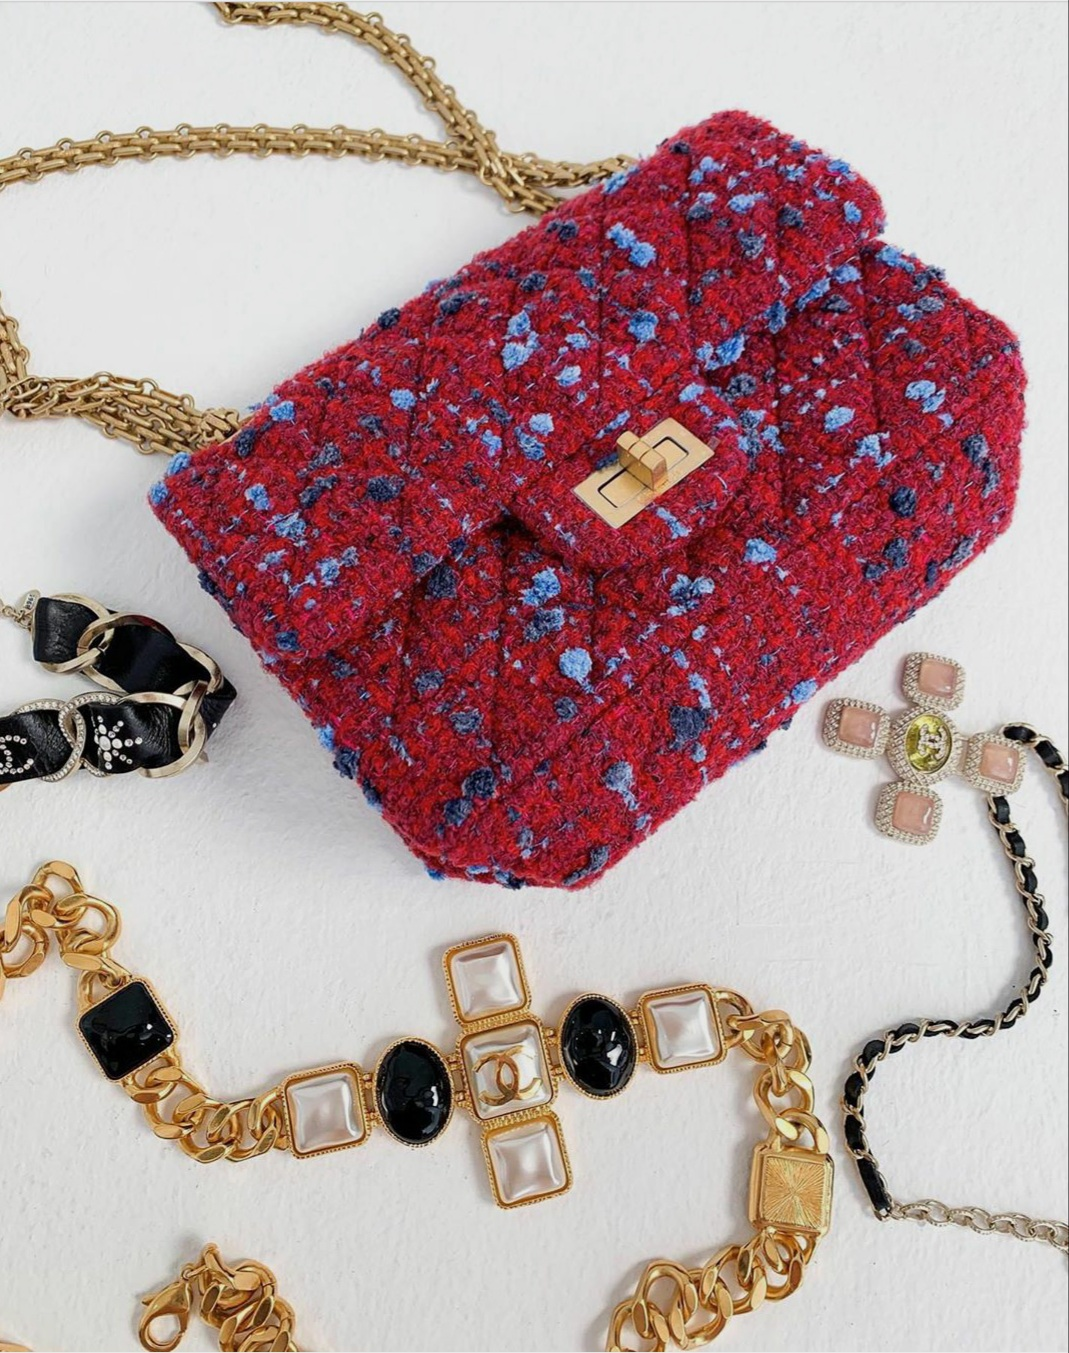 Red handbags, shoulder bags and clutch bags